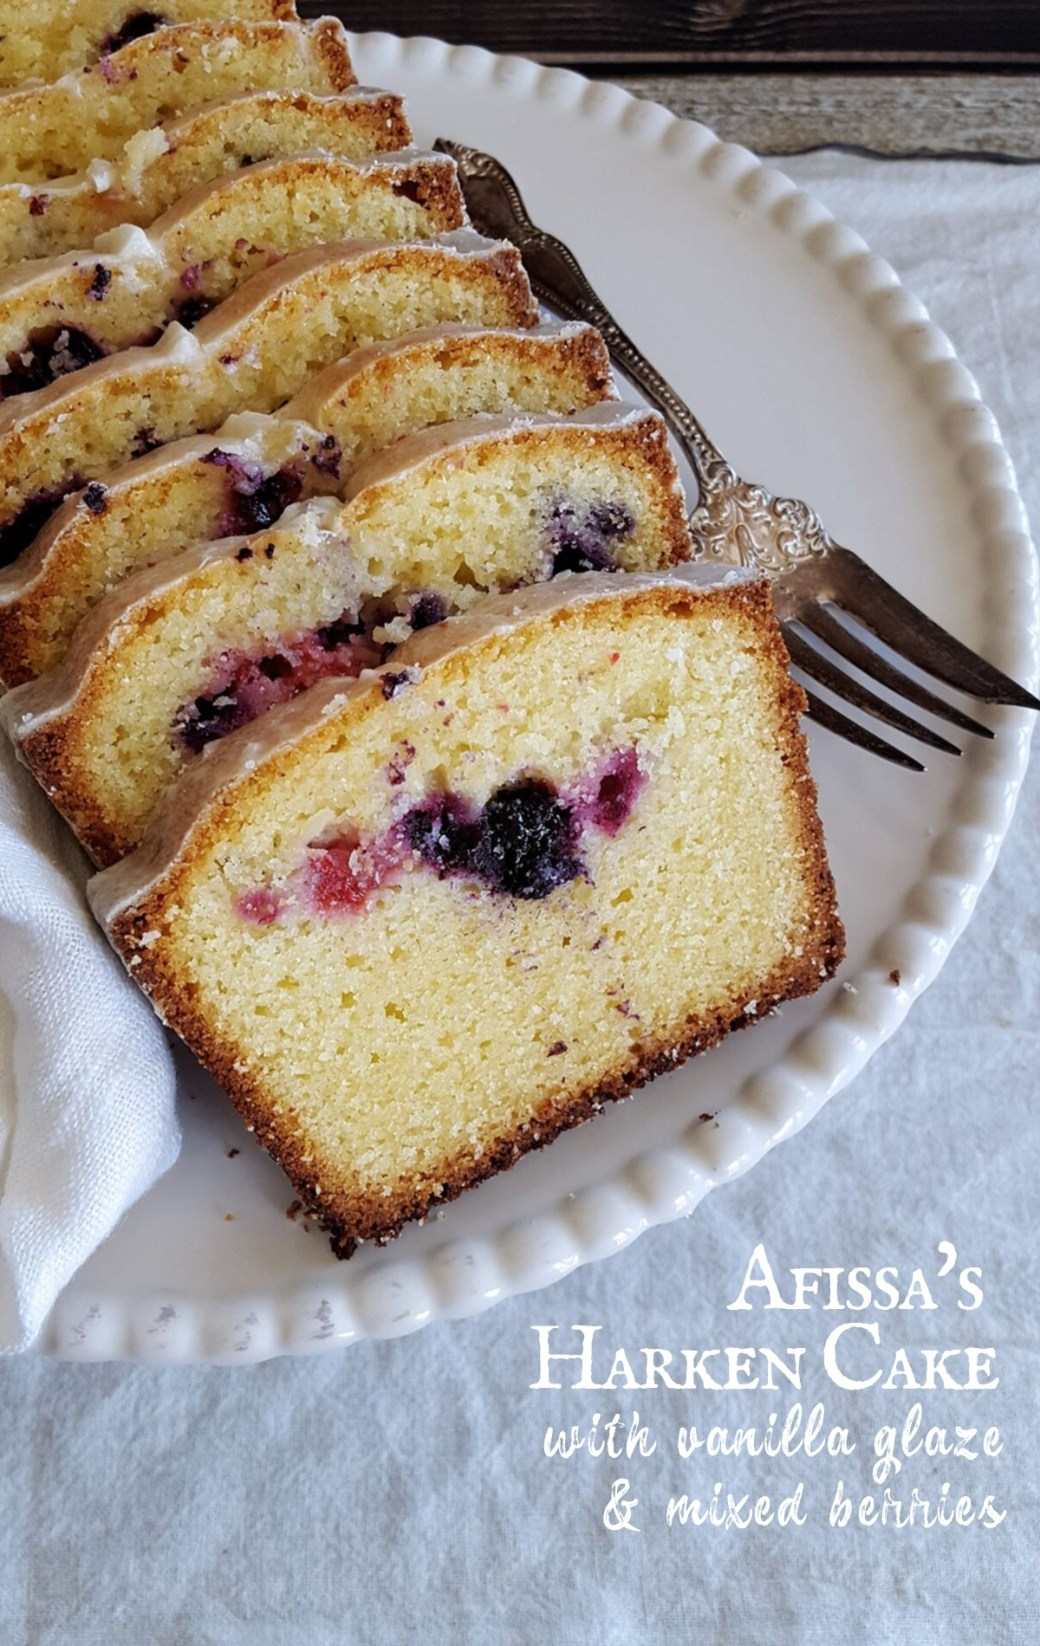 Light yellow sponge and vanilla glaze surround bites of mixed berries in this delightfully simple Harken Cake recipe inspired by Carnival Row. #harkencake #carnivalrow #steampunk #victorian | FeastInThyme.com